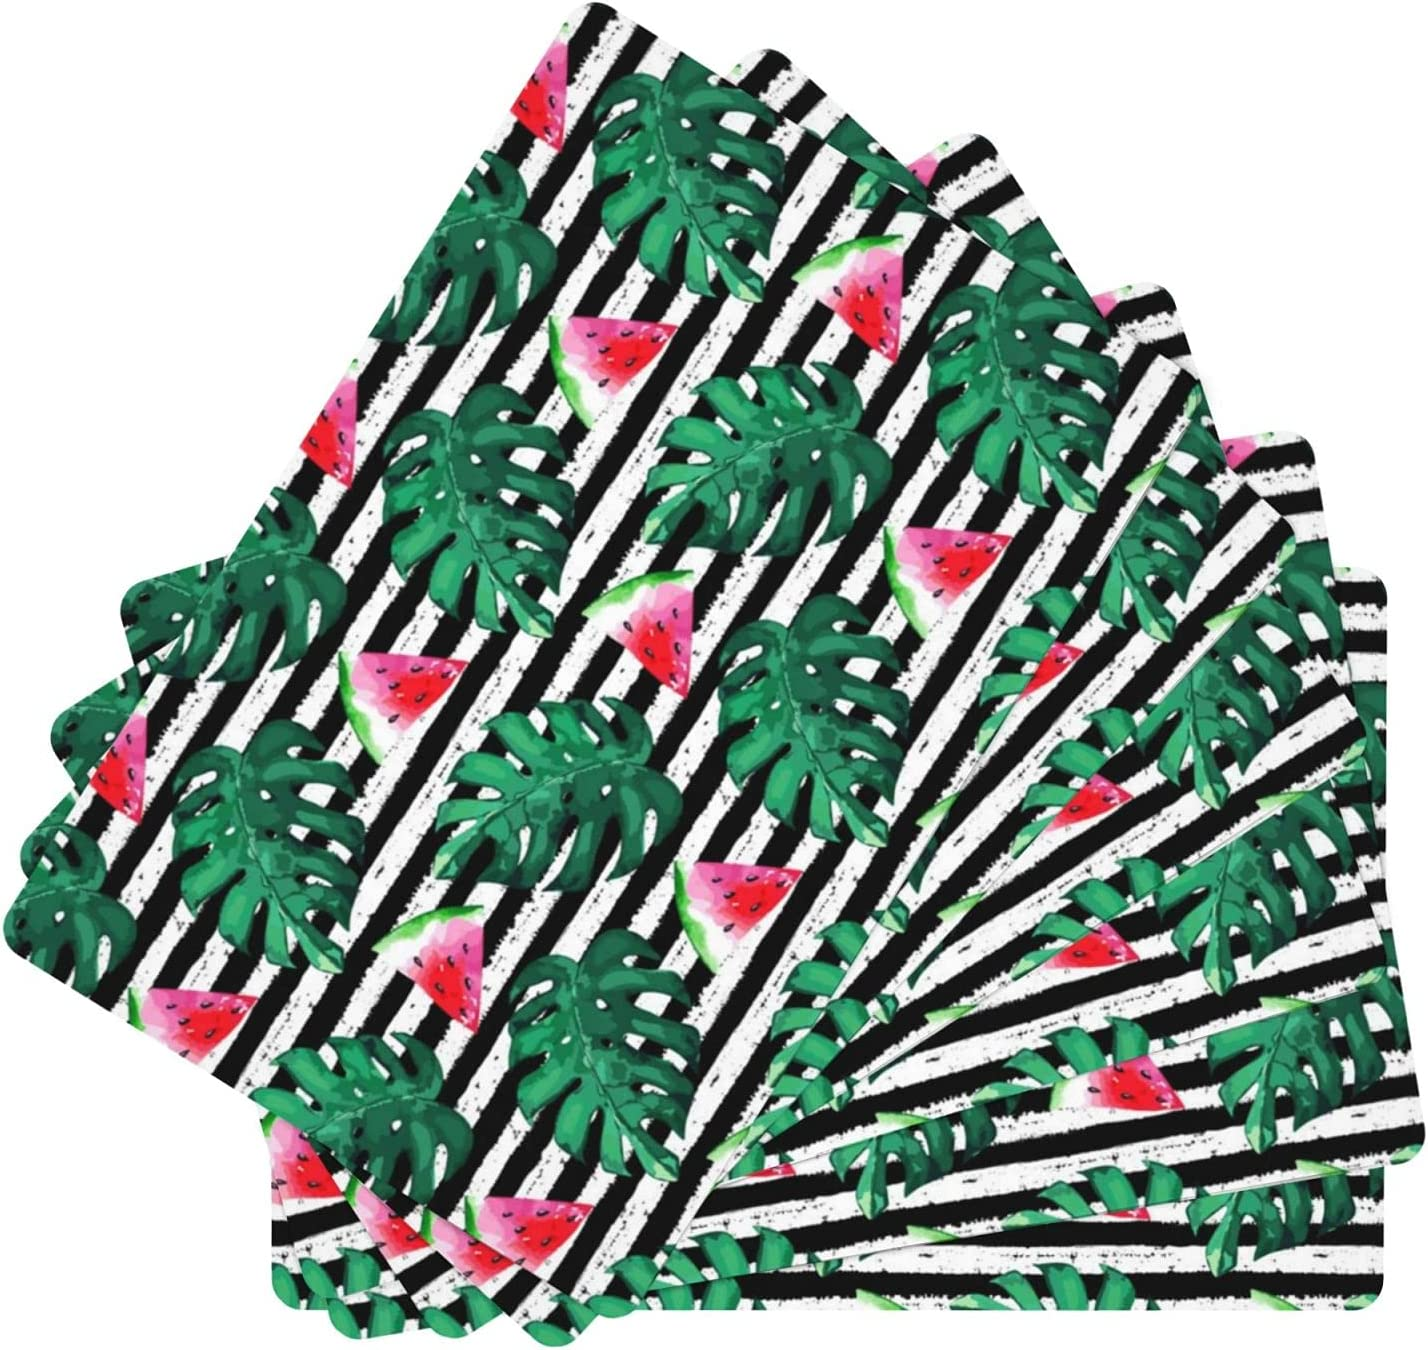 Watermelon Colorado Springs Mall on Striped Background Placemat Set Mats 67% OFF of fixed price Table Leather